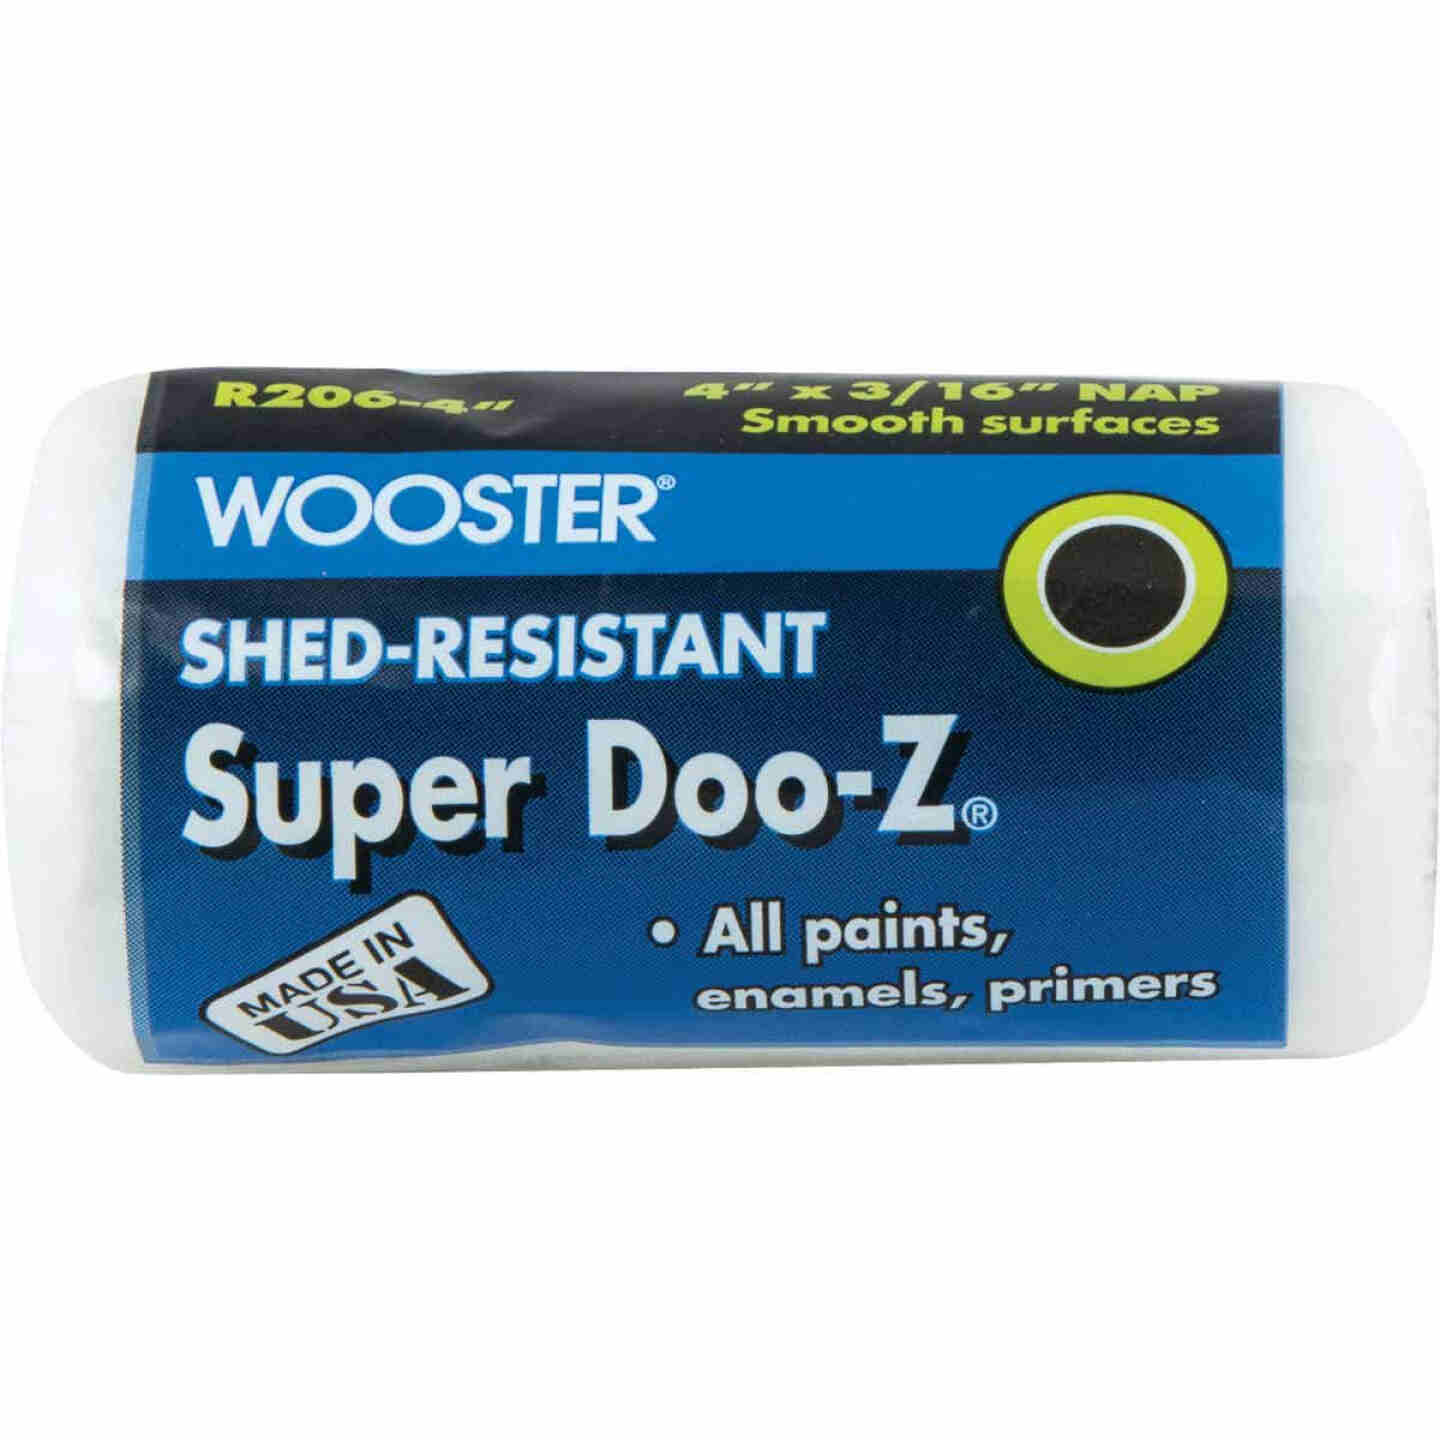 Wooster Super Doo-Z 4 In. x 3/16 In. Woven Fabric Roller Cover Image 1